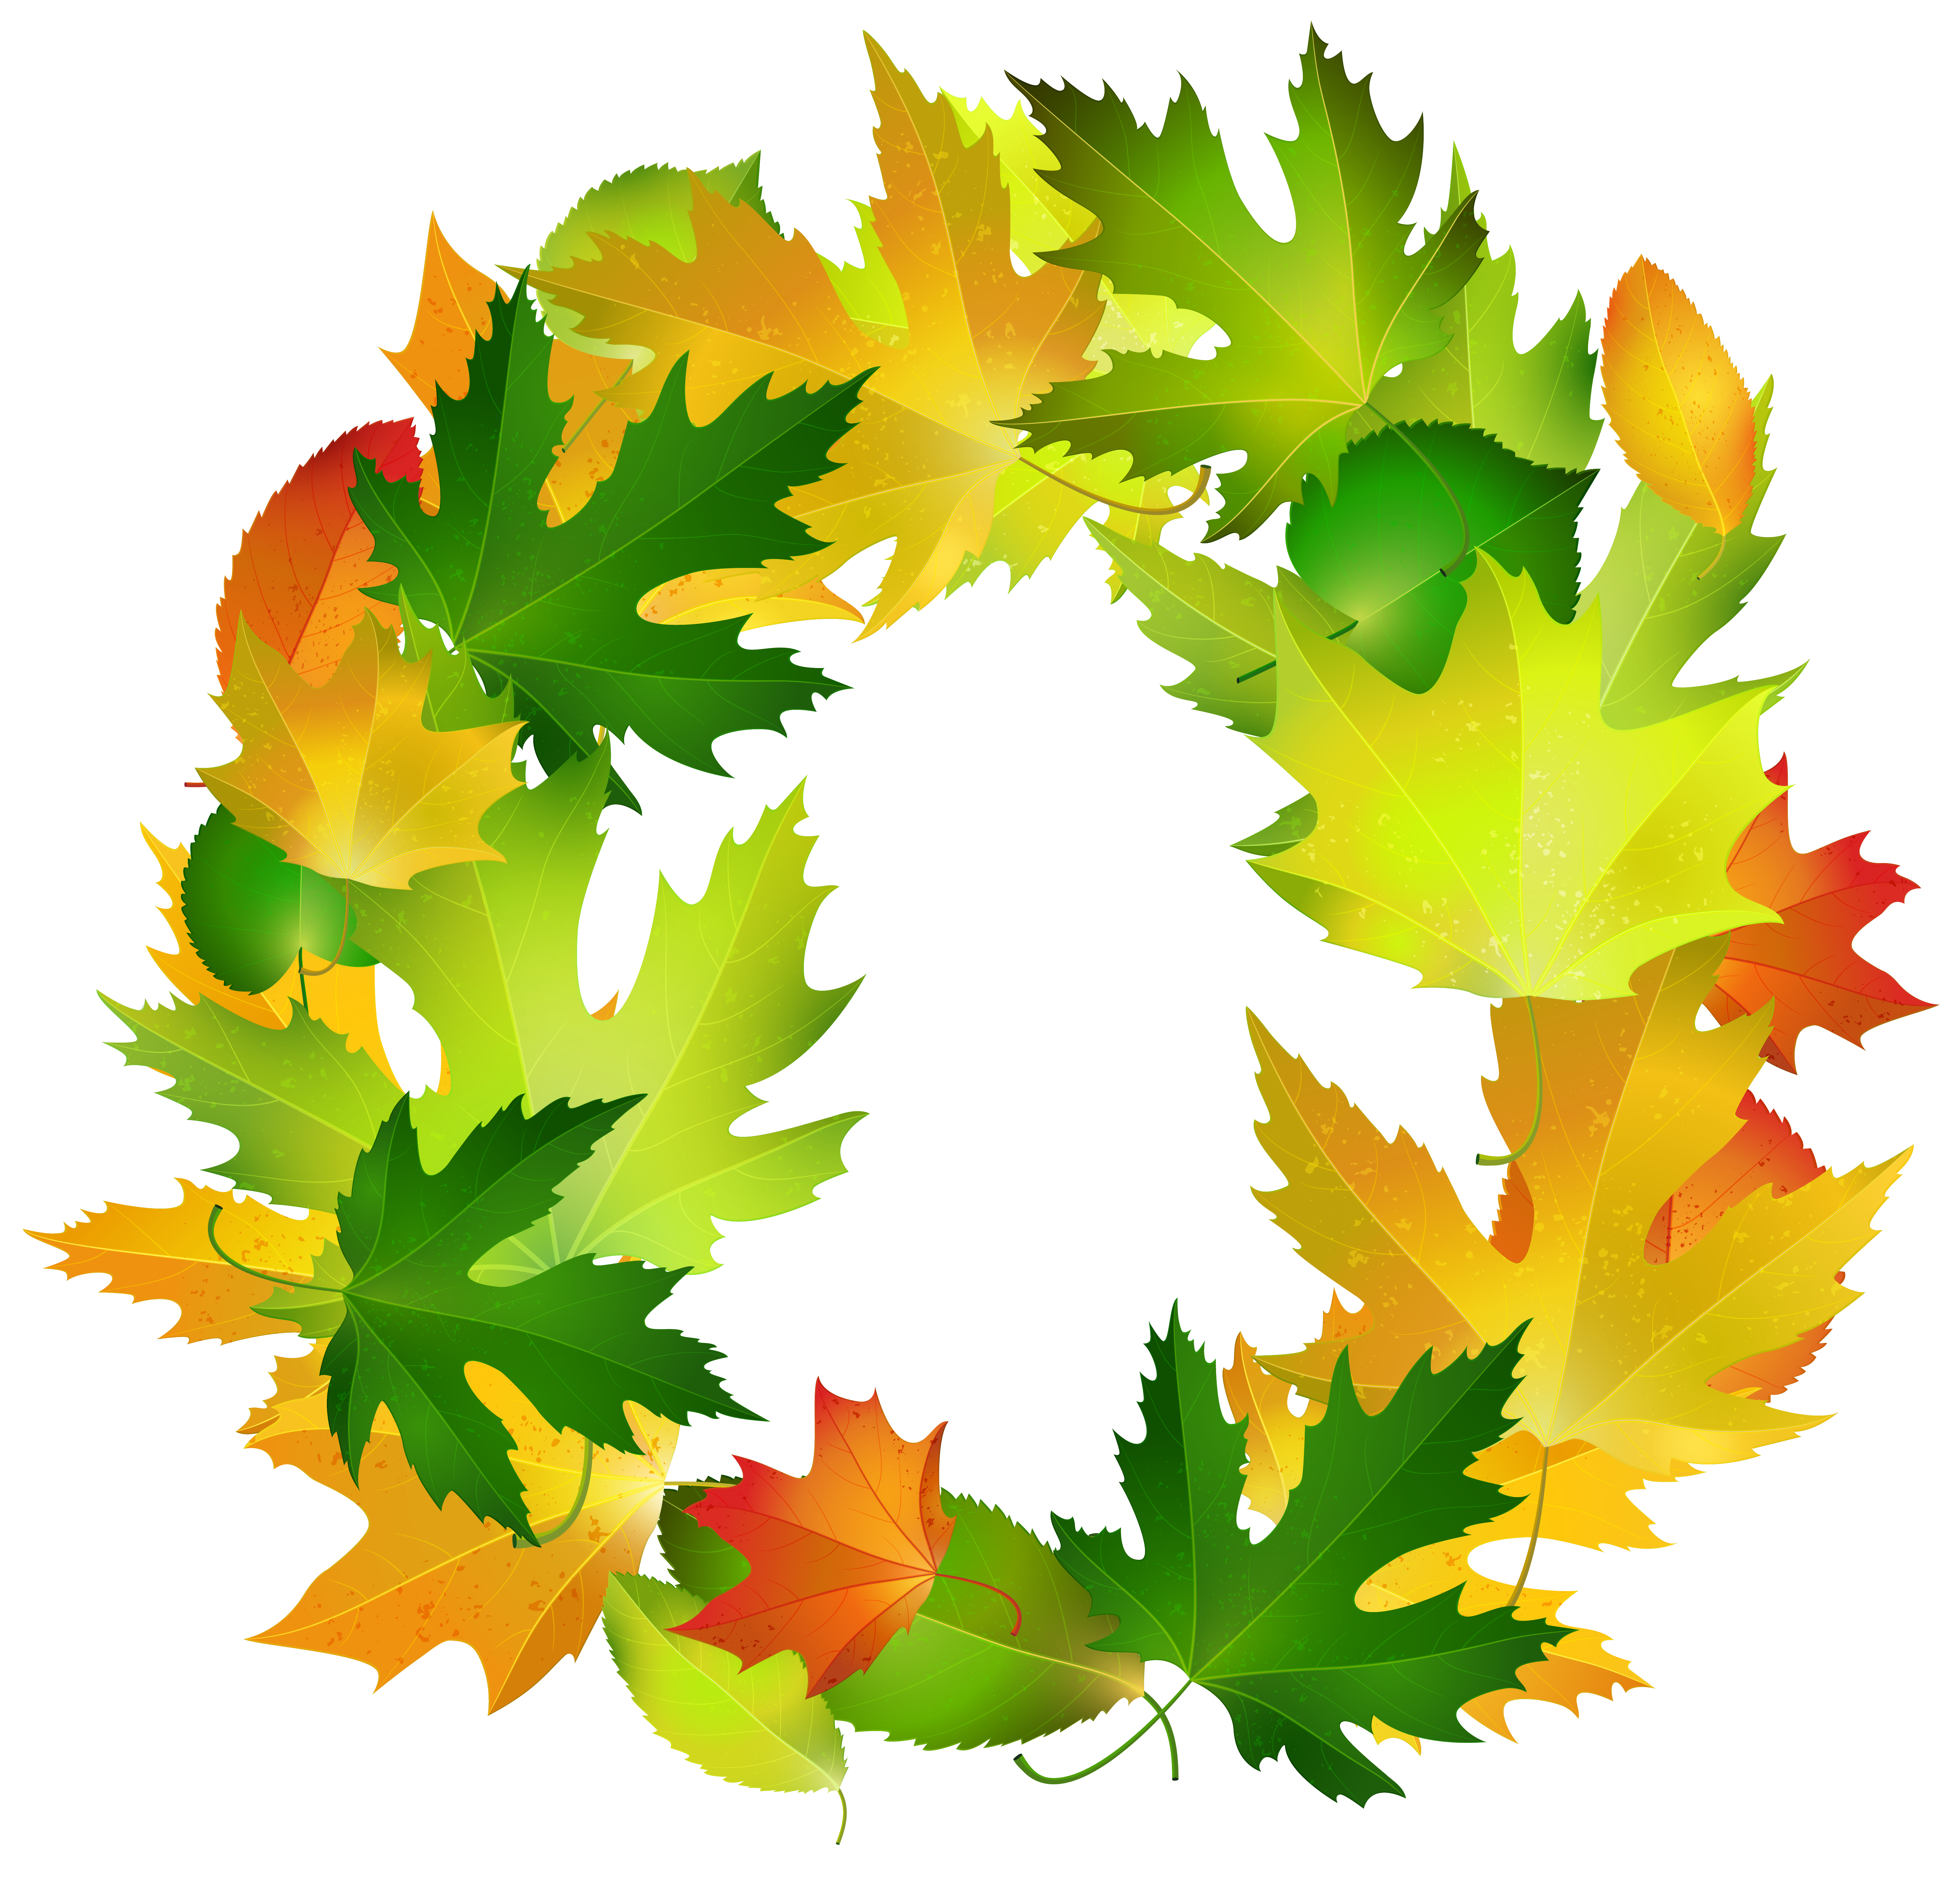 Fall tree border clipart picture royalty free Leaf Border Oval Clip art - Fall Leaves Oval Border Frame PNG ... picture royalty free